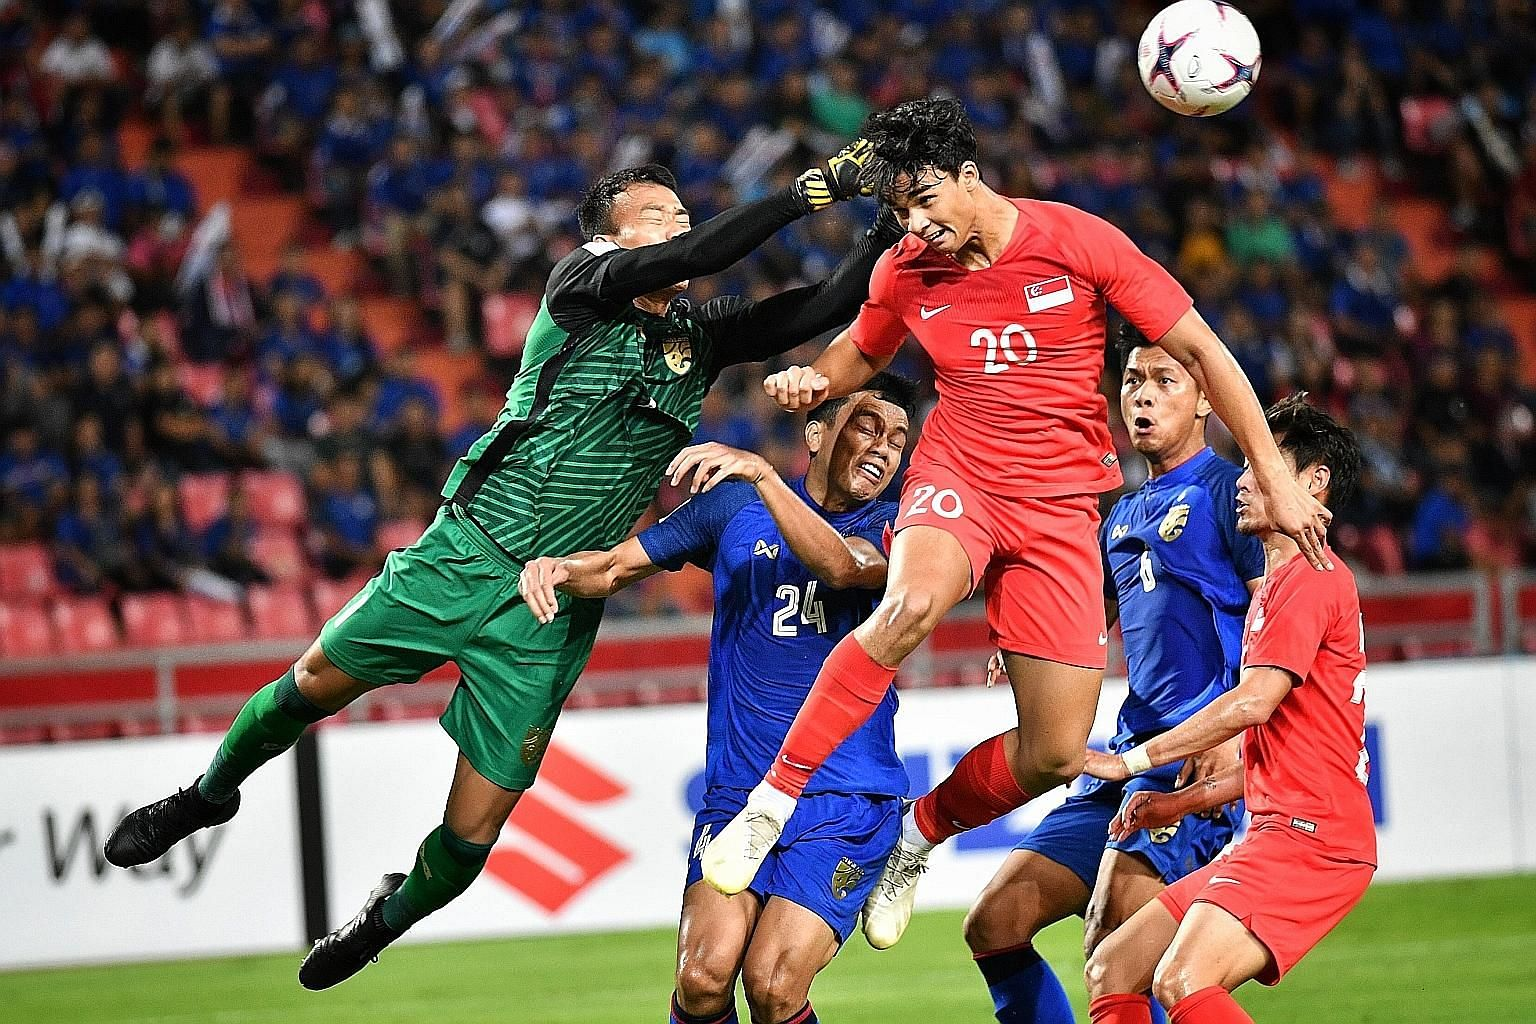 Thailand goalkeeper Chatchai Budprom thwarting Ikhsan Fandi's attempt at goal in a group game at the last AFF Suzuki Cup in Bangkok. Singapore lost 3-0.